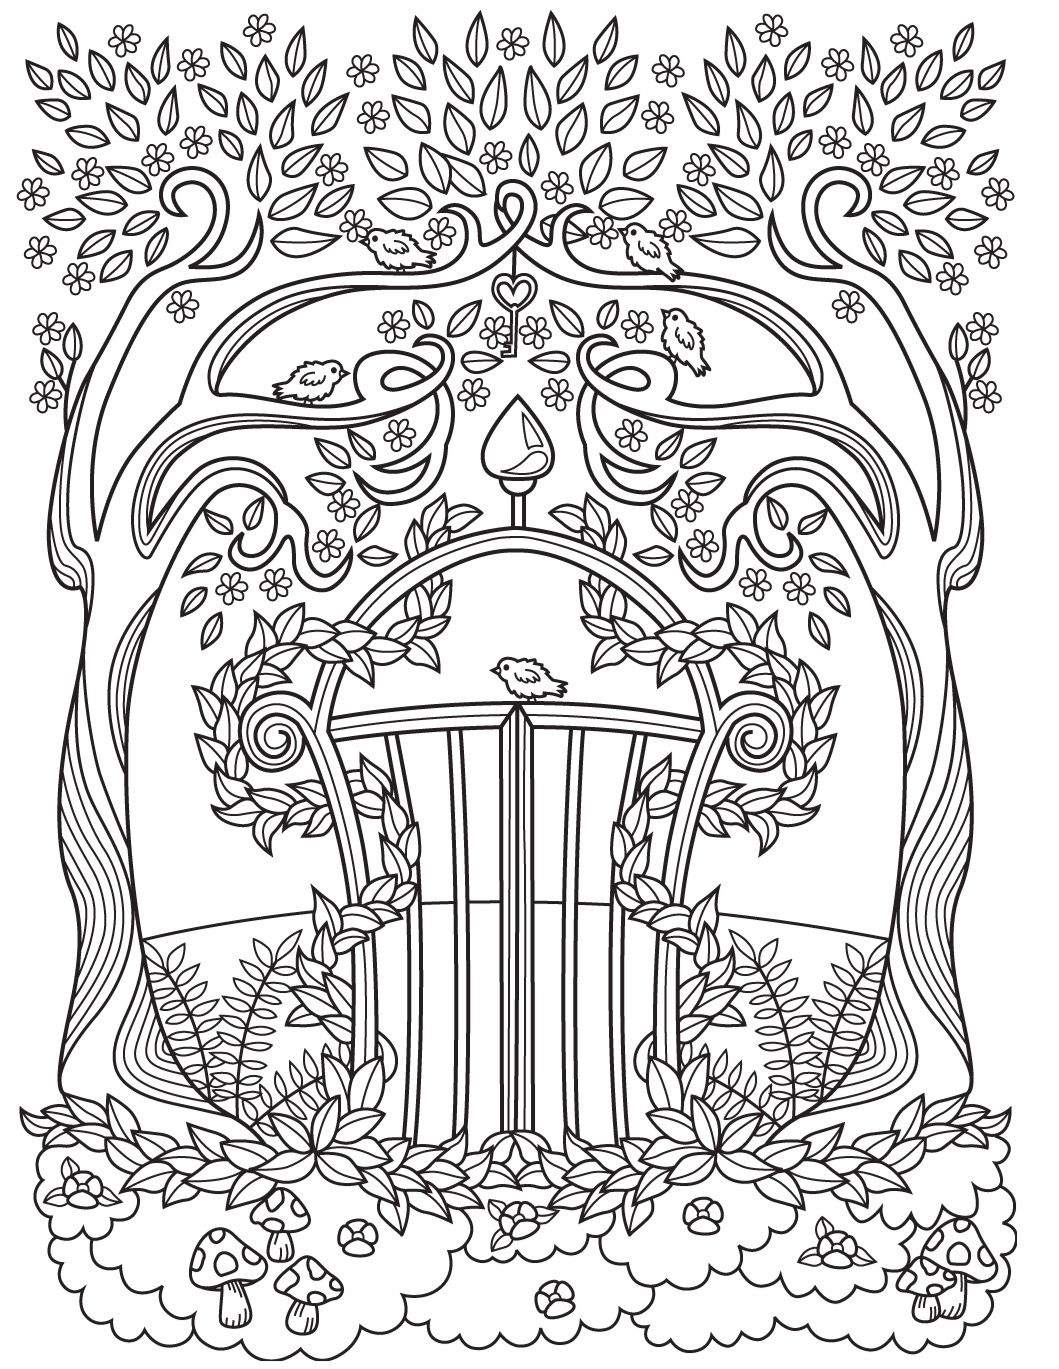 gardens colorish coloring book app for adults mandala relax by goodsofttech - Adult Coloring Book App